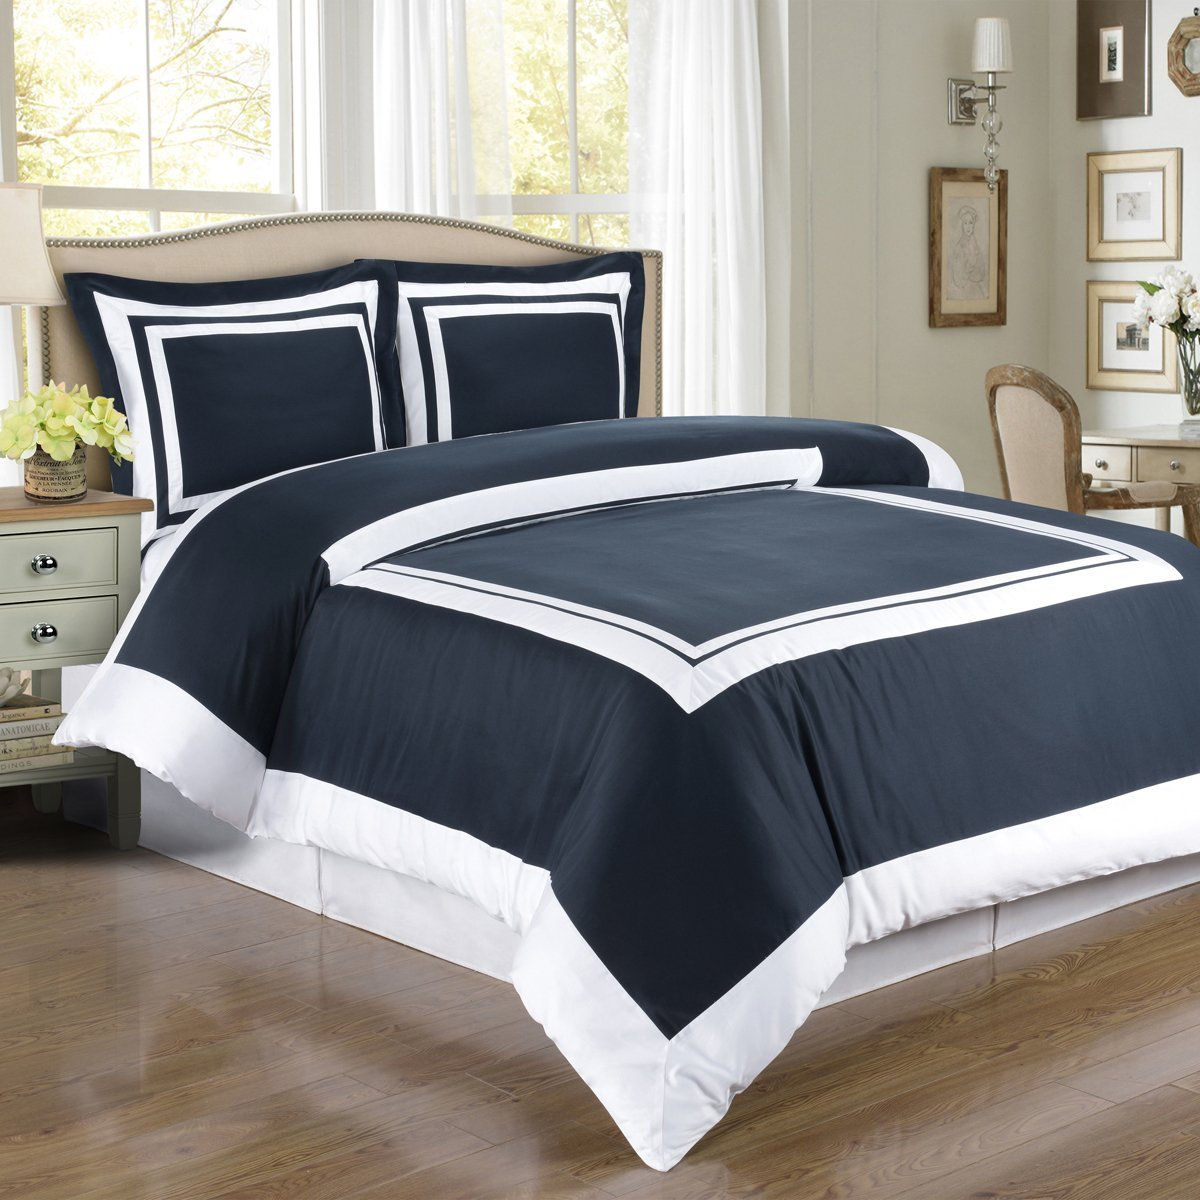 Delicate hotel navy and white 3pc king cal king comforter cover duvet